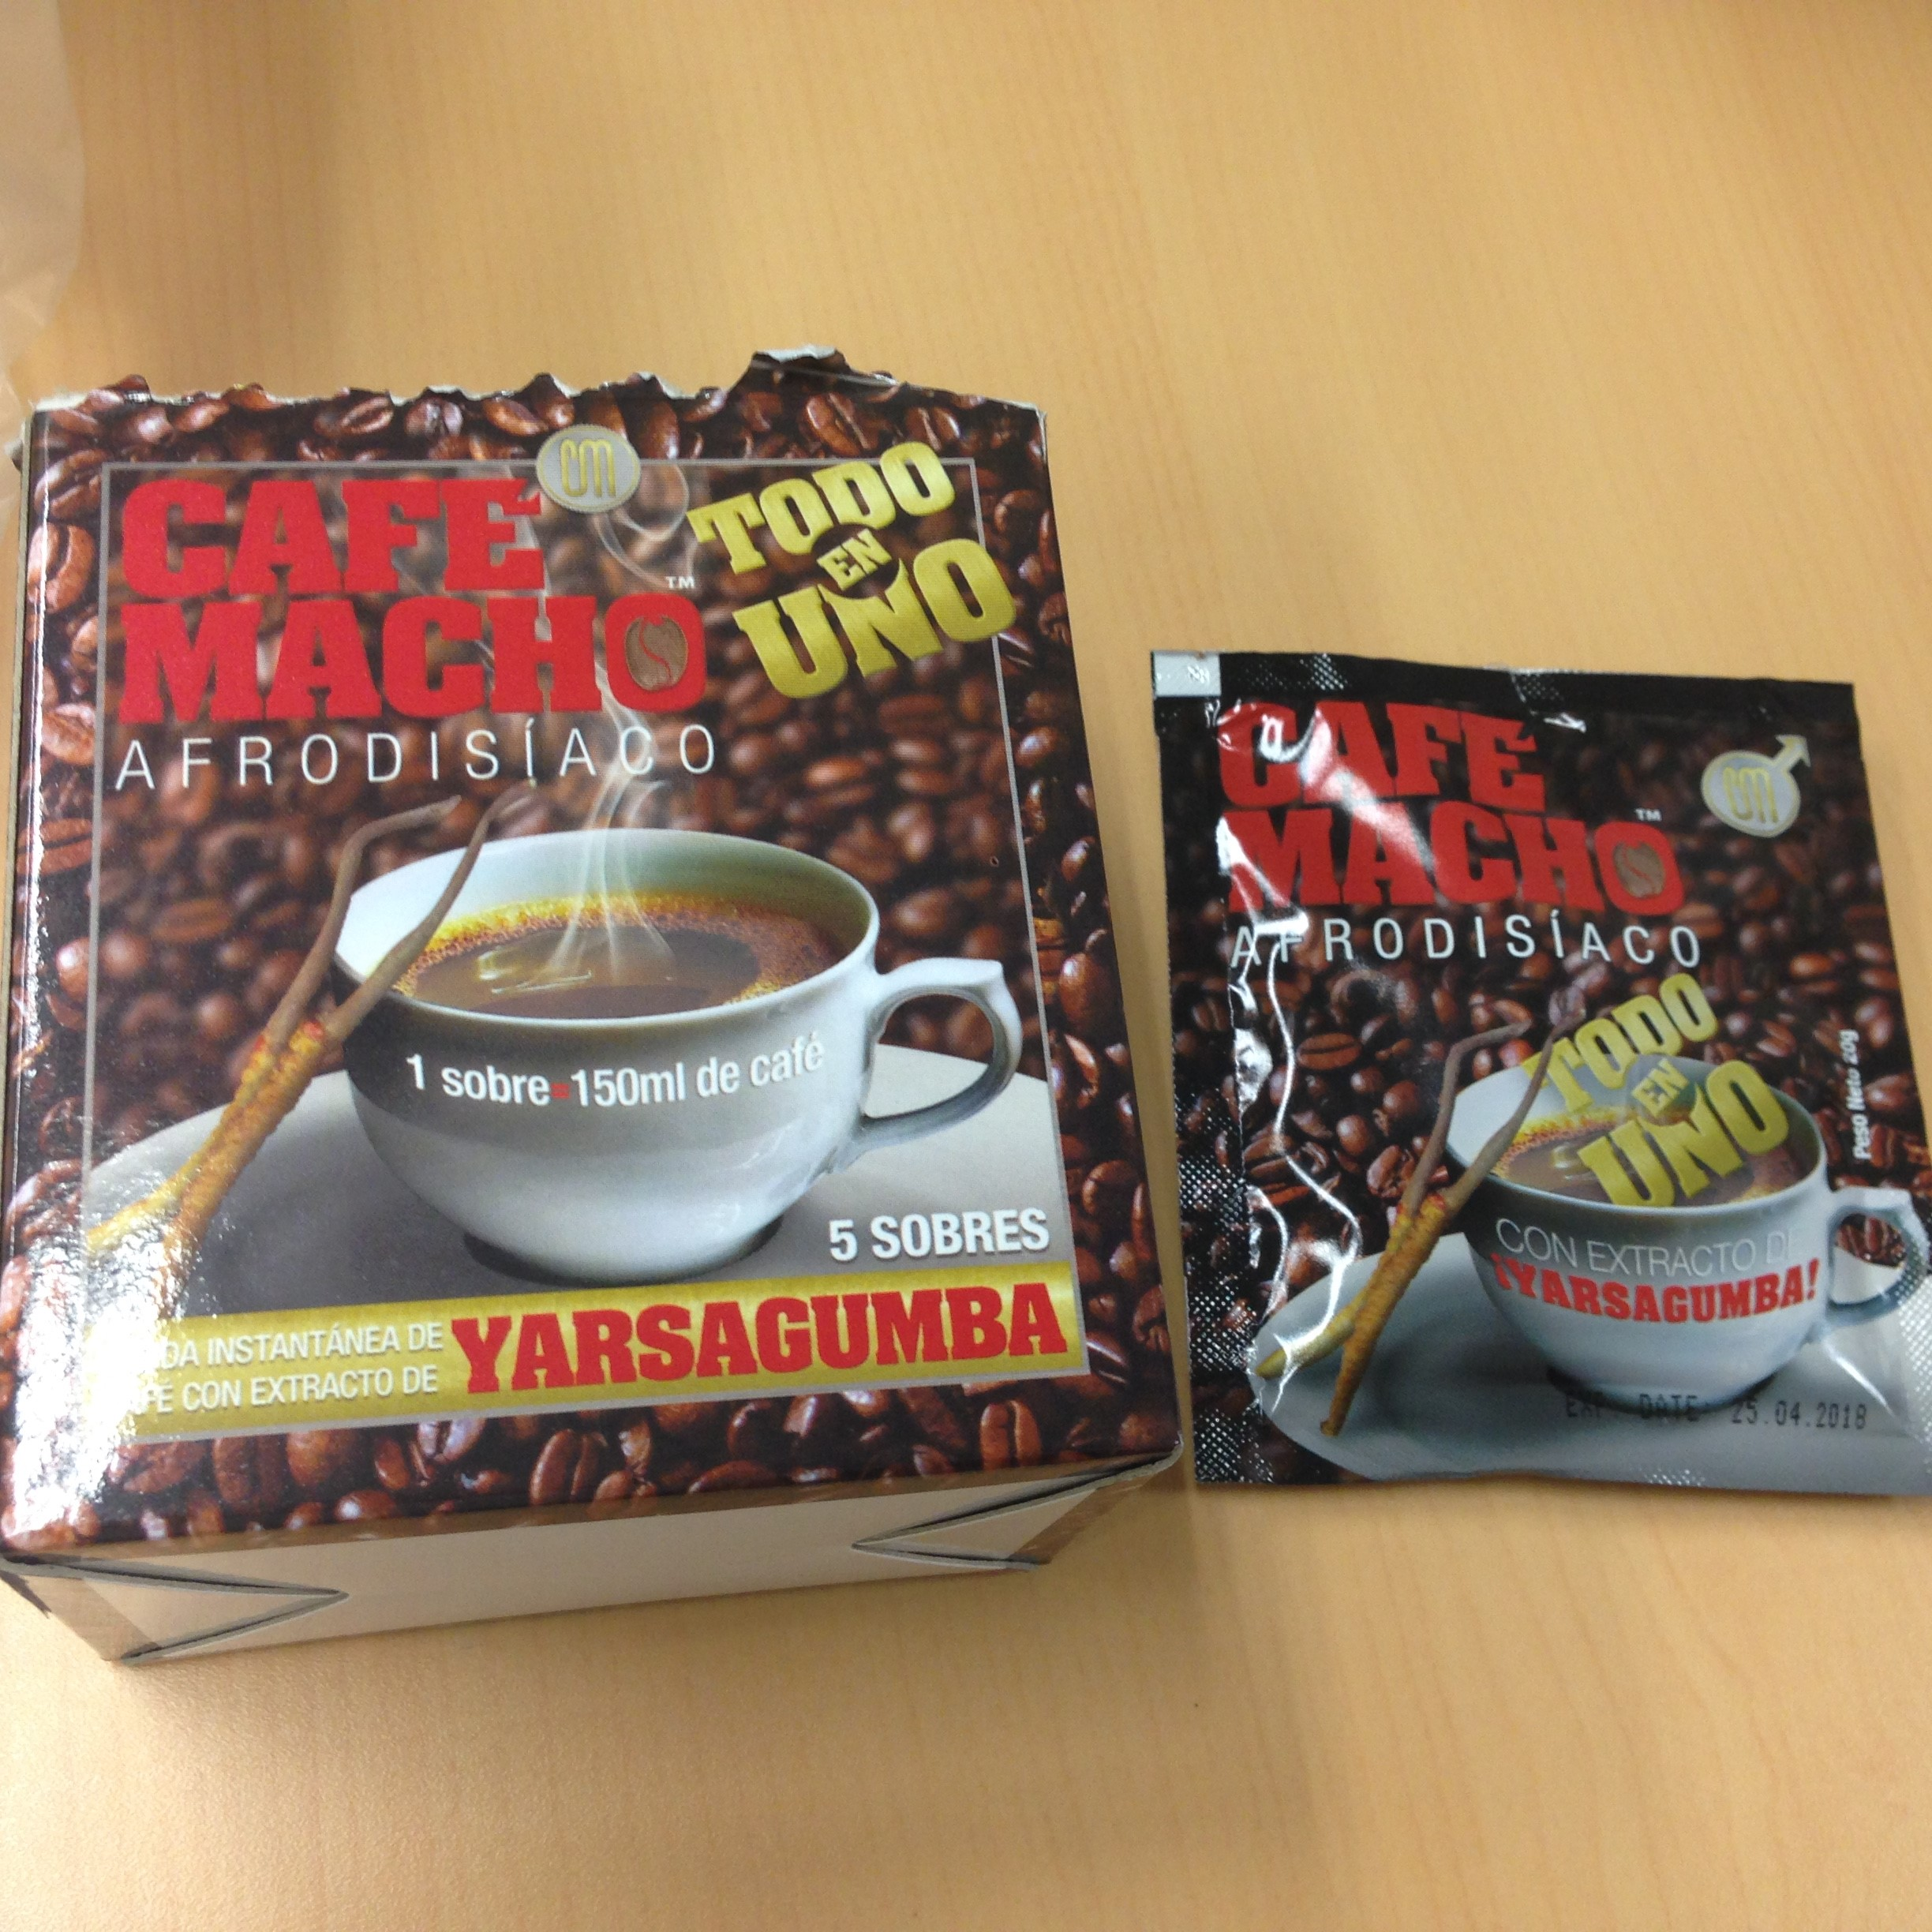 Image of the illigal product: Café Macho Afrodisiaco